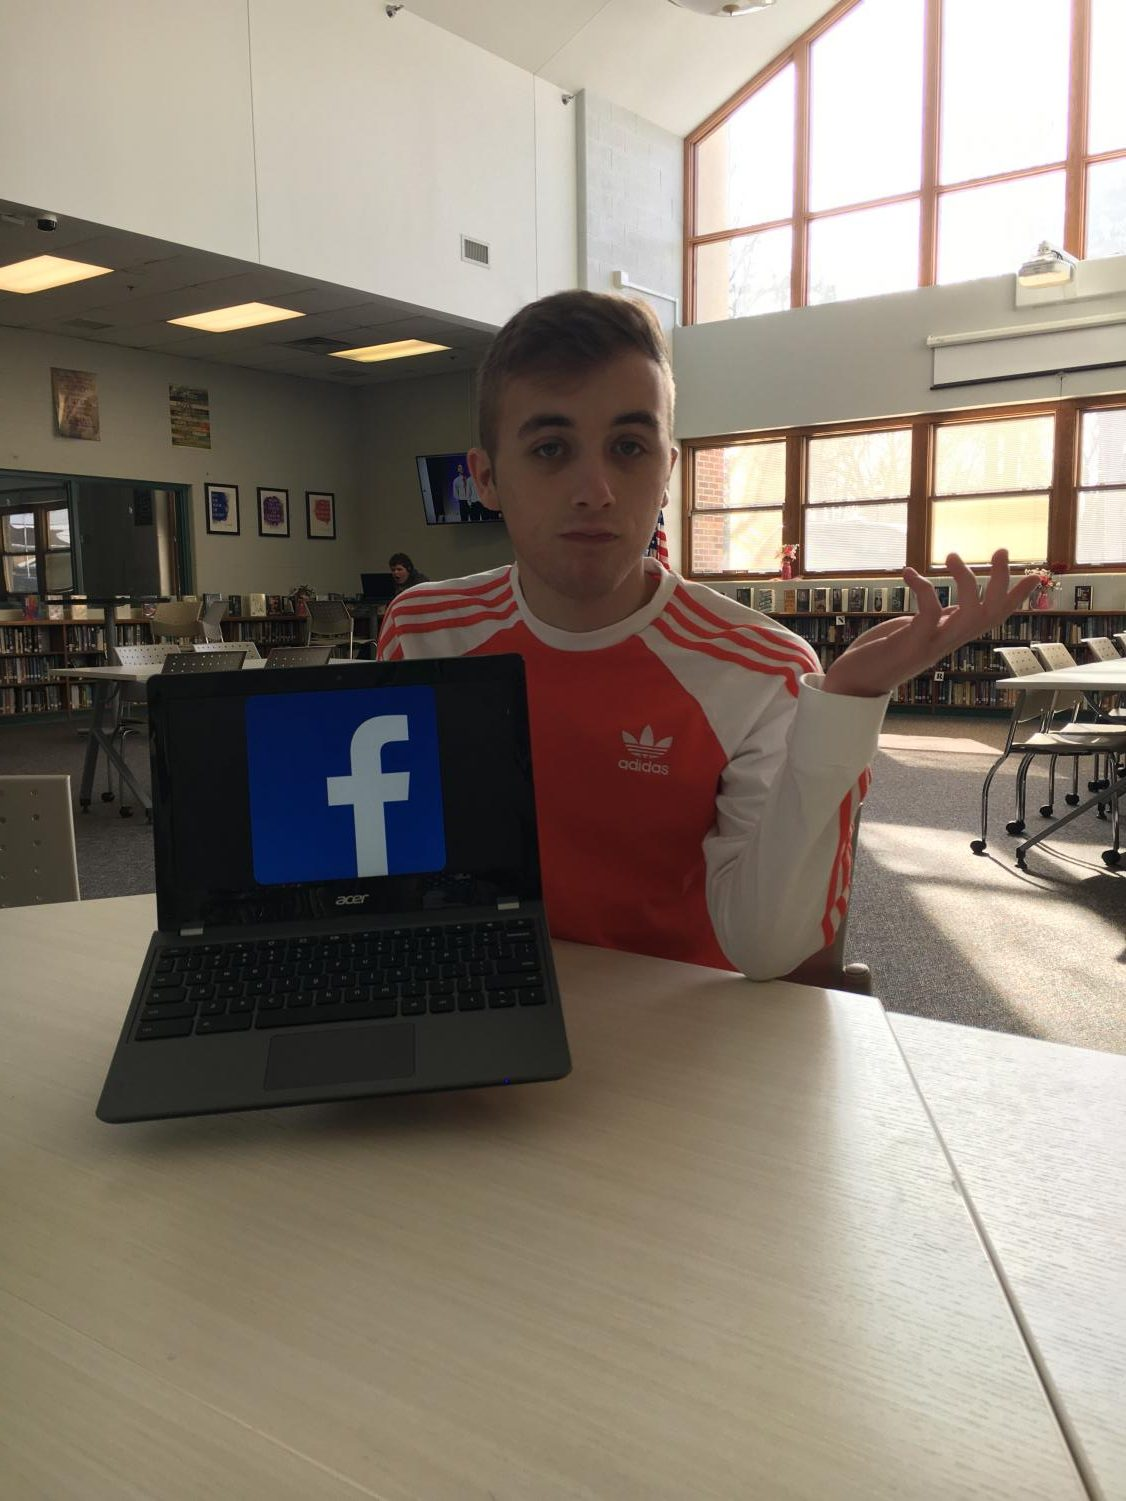 Logan Abell debates whether Facebook is still cool.